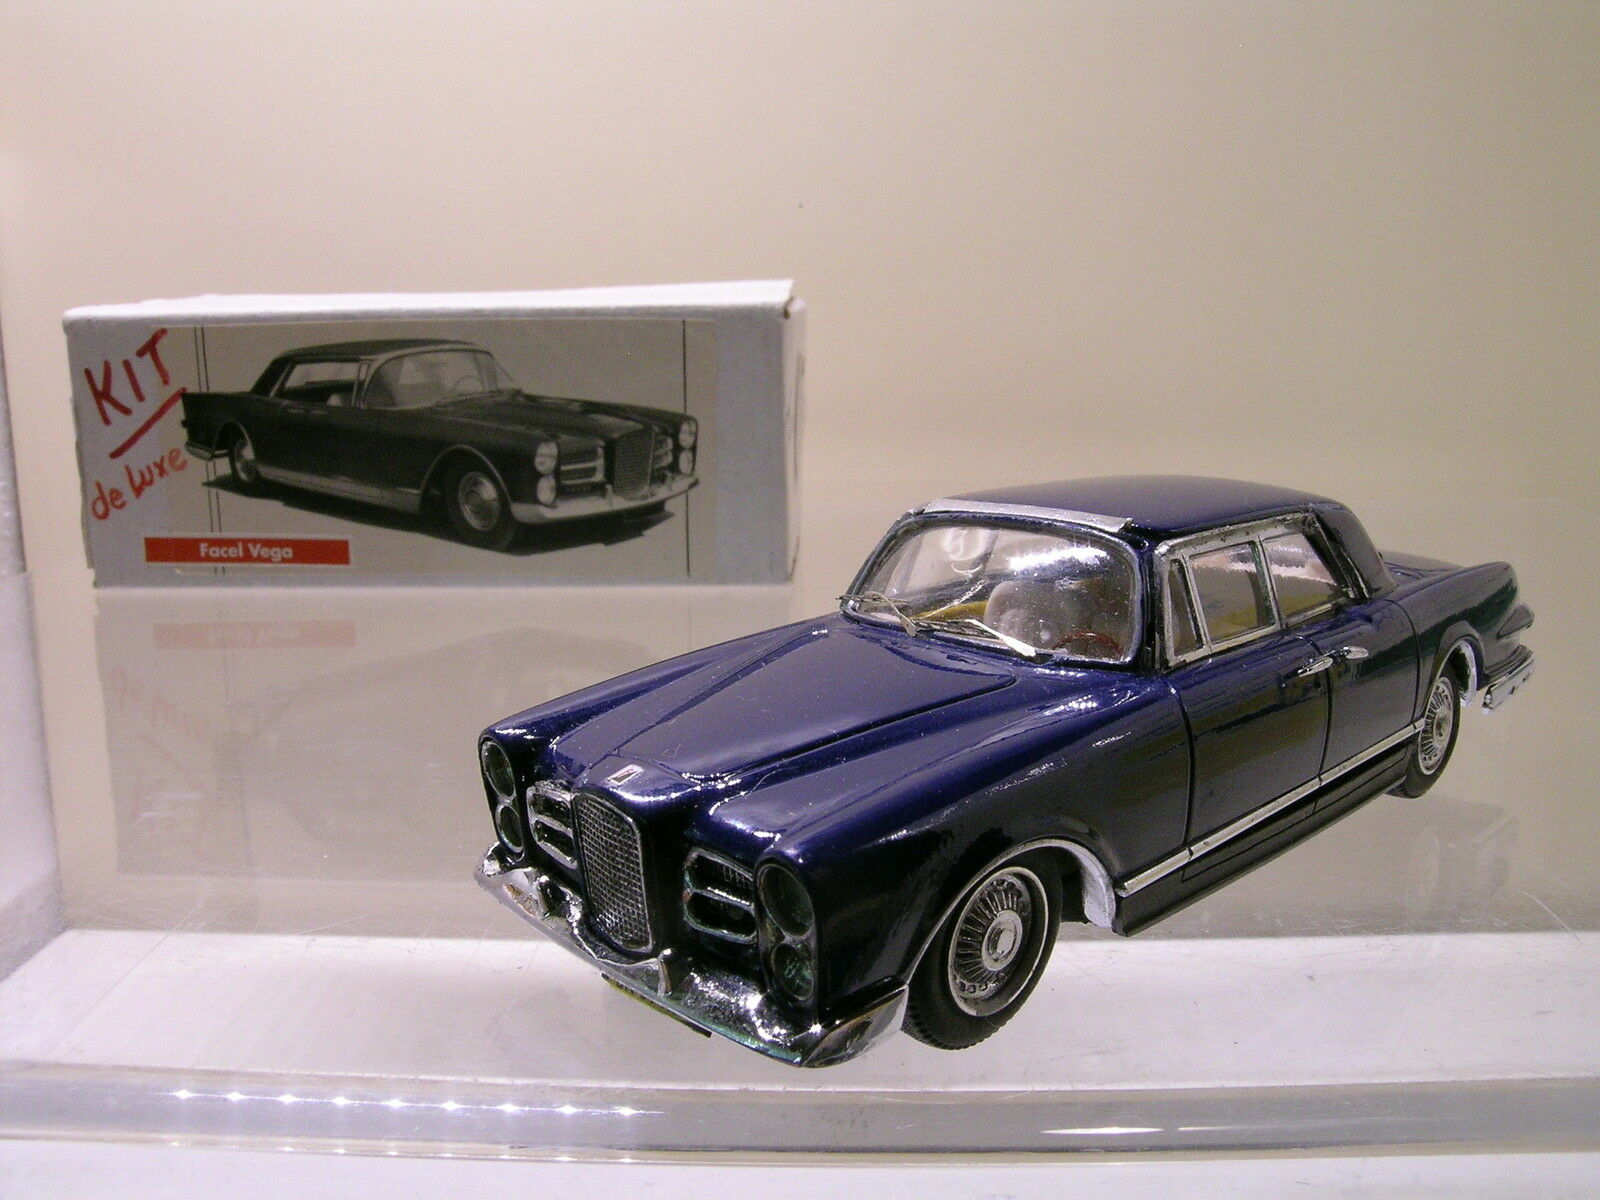 JPS MINIATURES KP191 FACEL VEGA EXCELLENCE blu RESIN HANDBUILT BOX SCALE 1 43